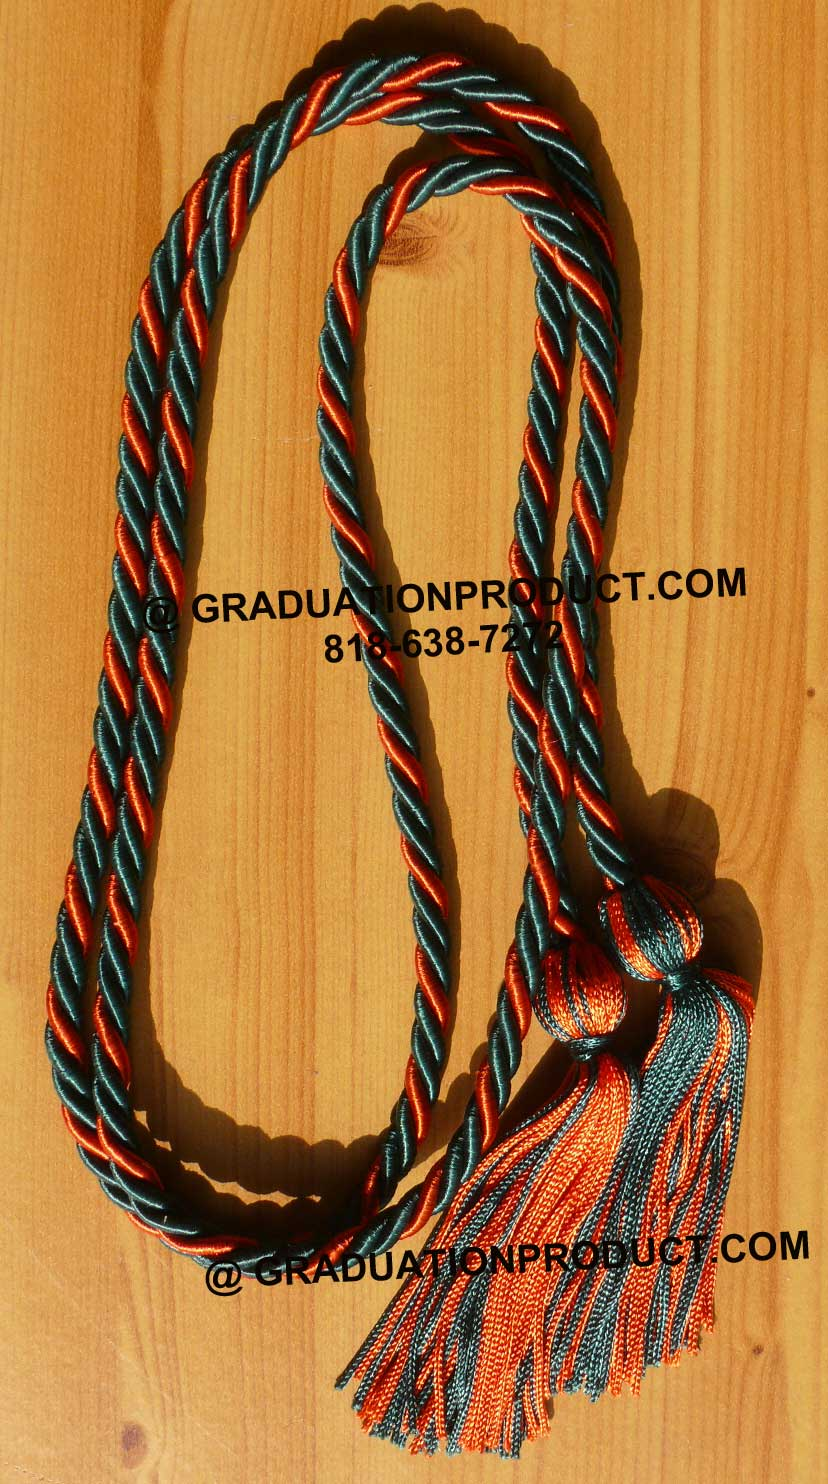 Huntergreen Orange Honor Cords